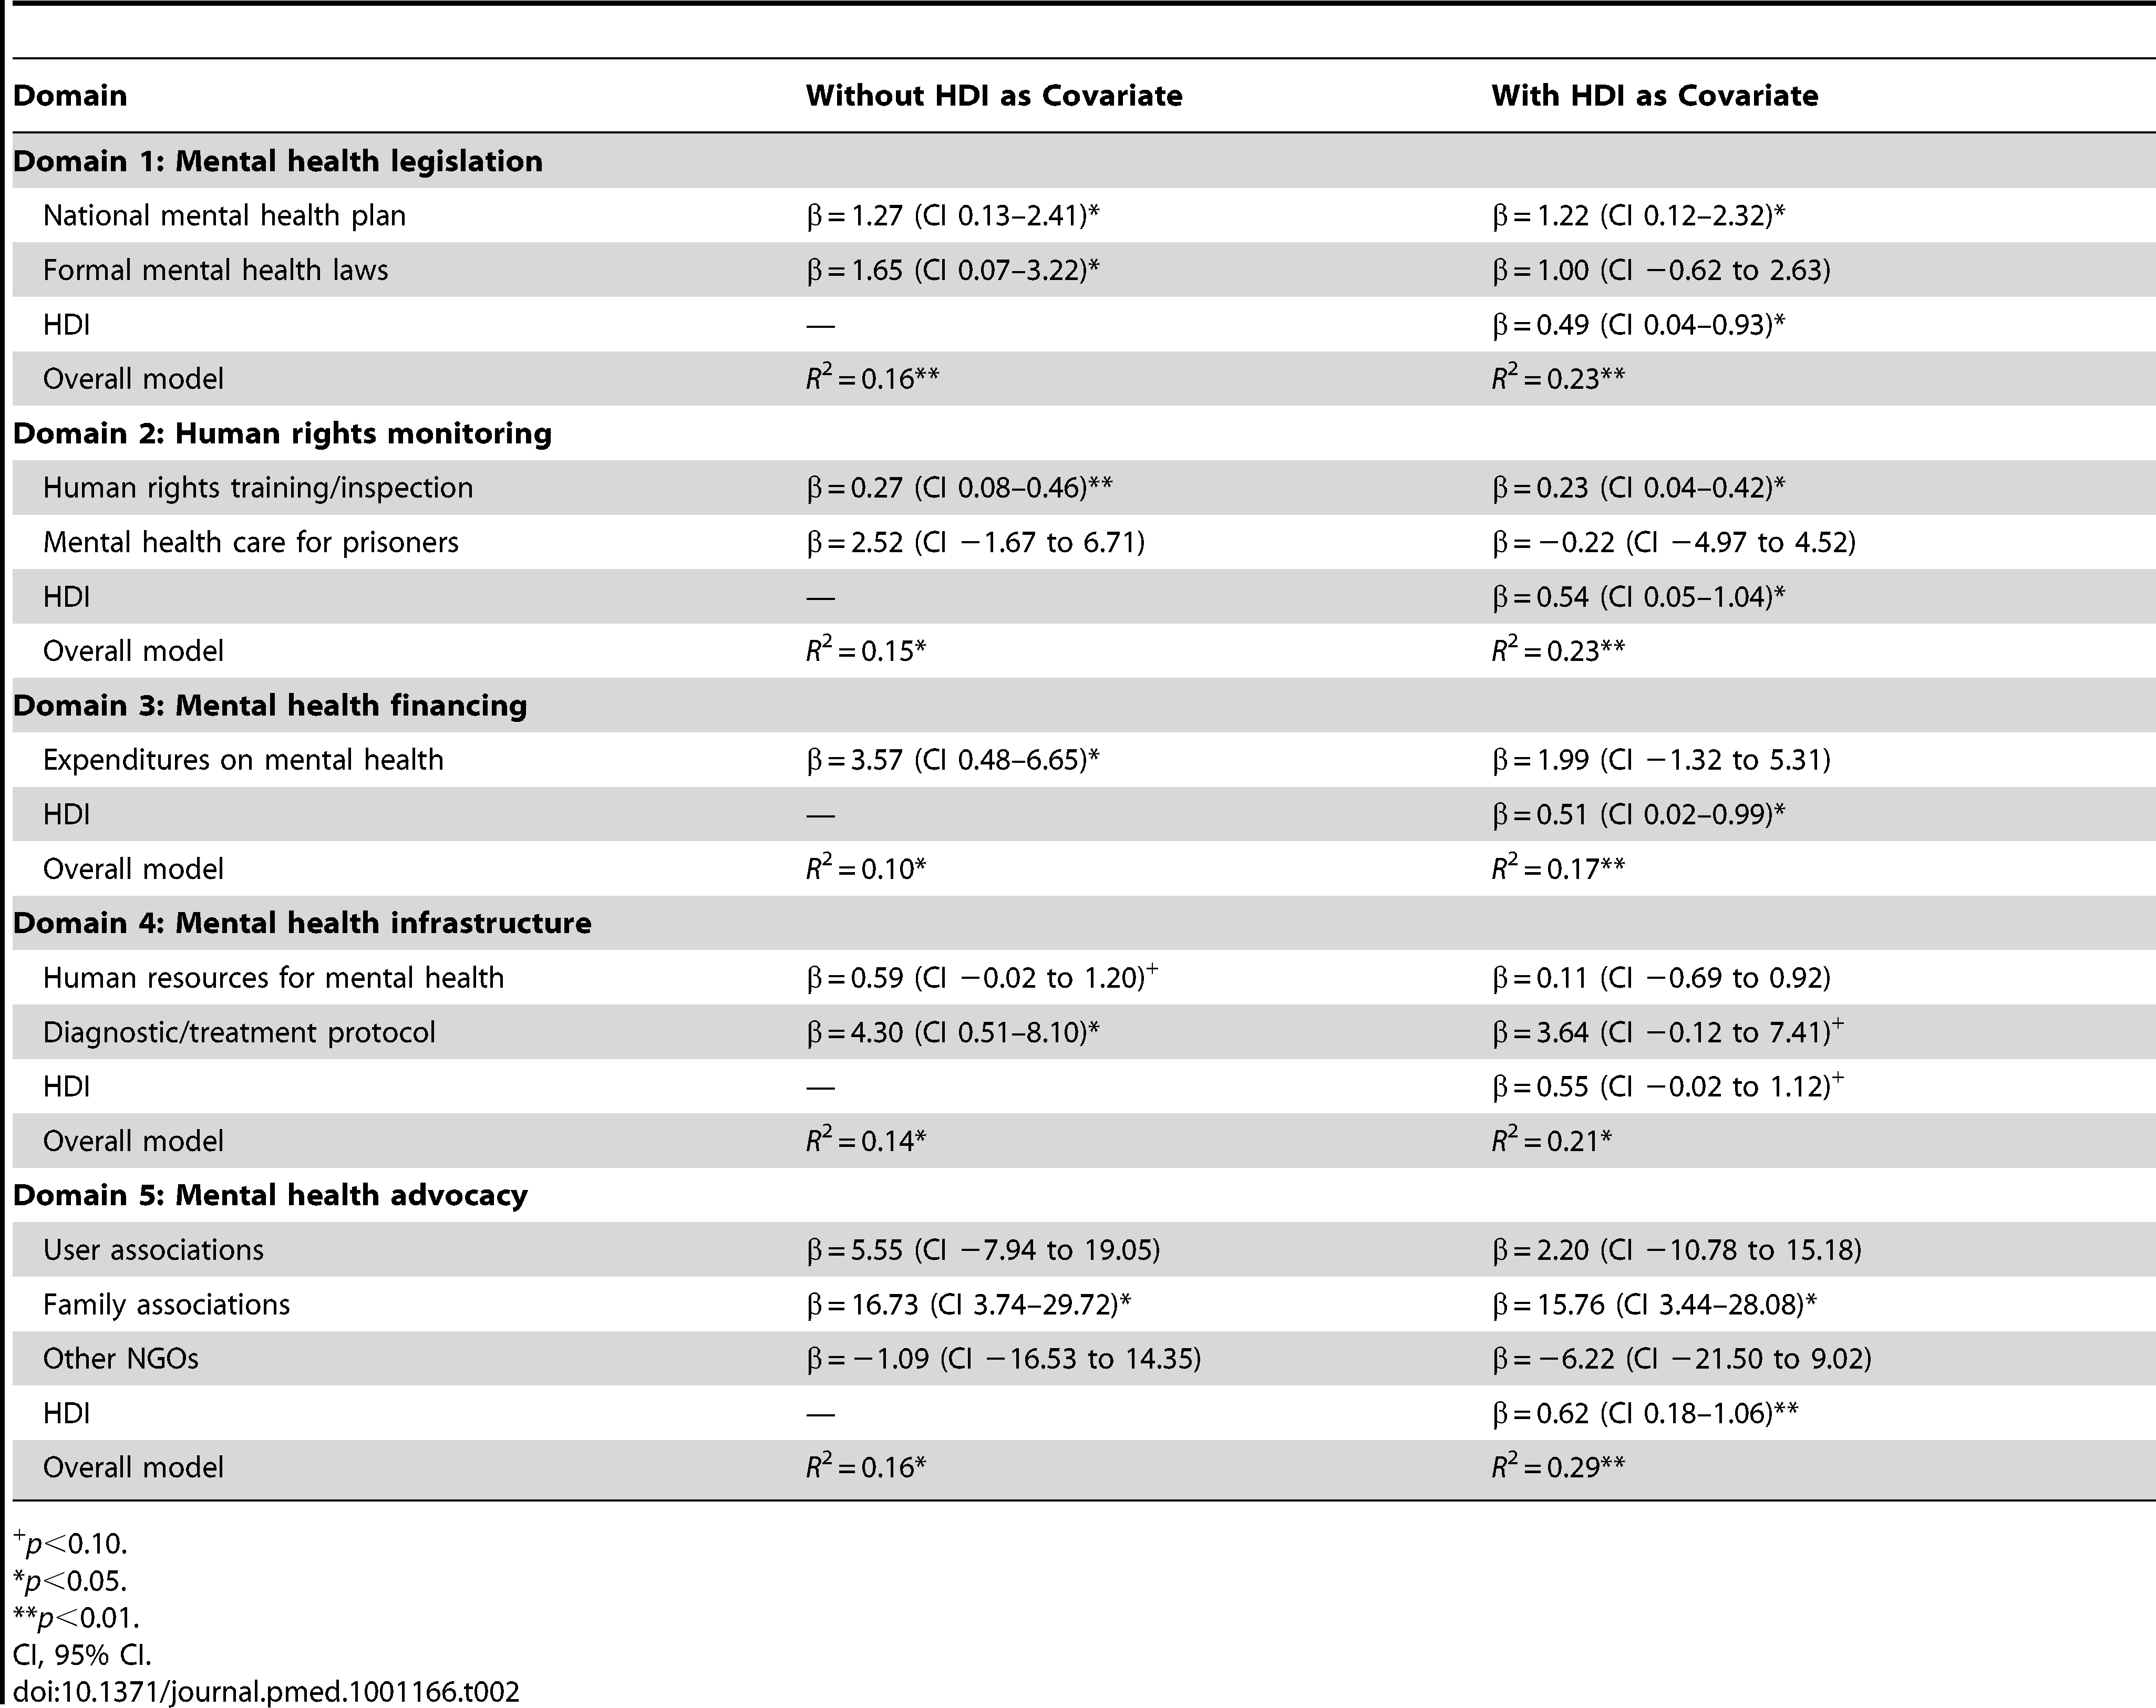 Domain-specific associations with medicine availability.